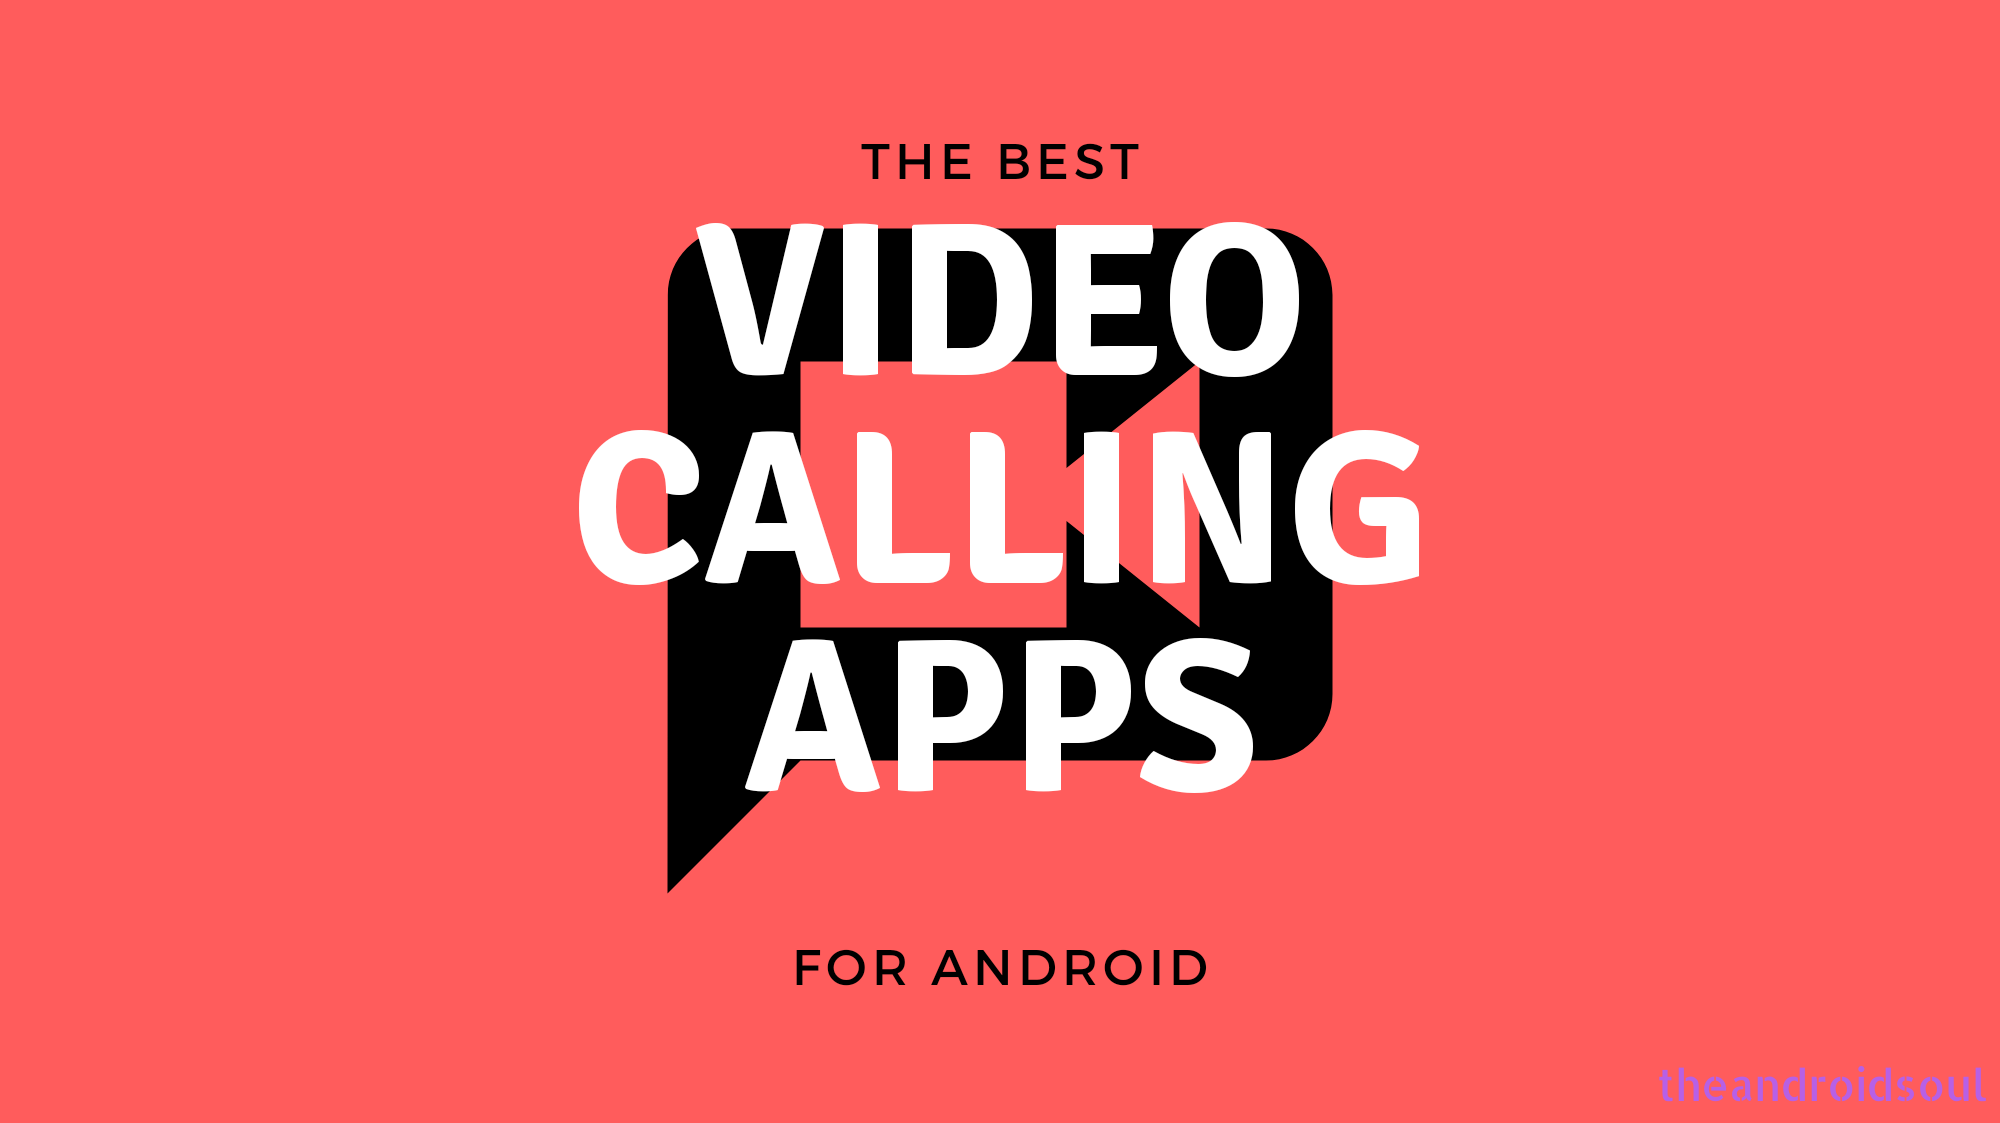 Best Video calling apps on Android